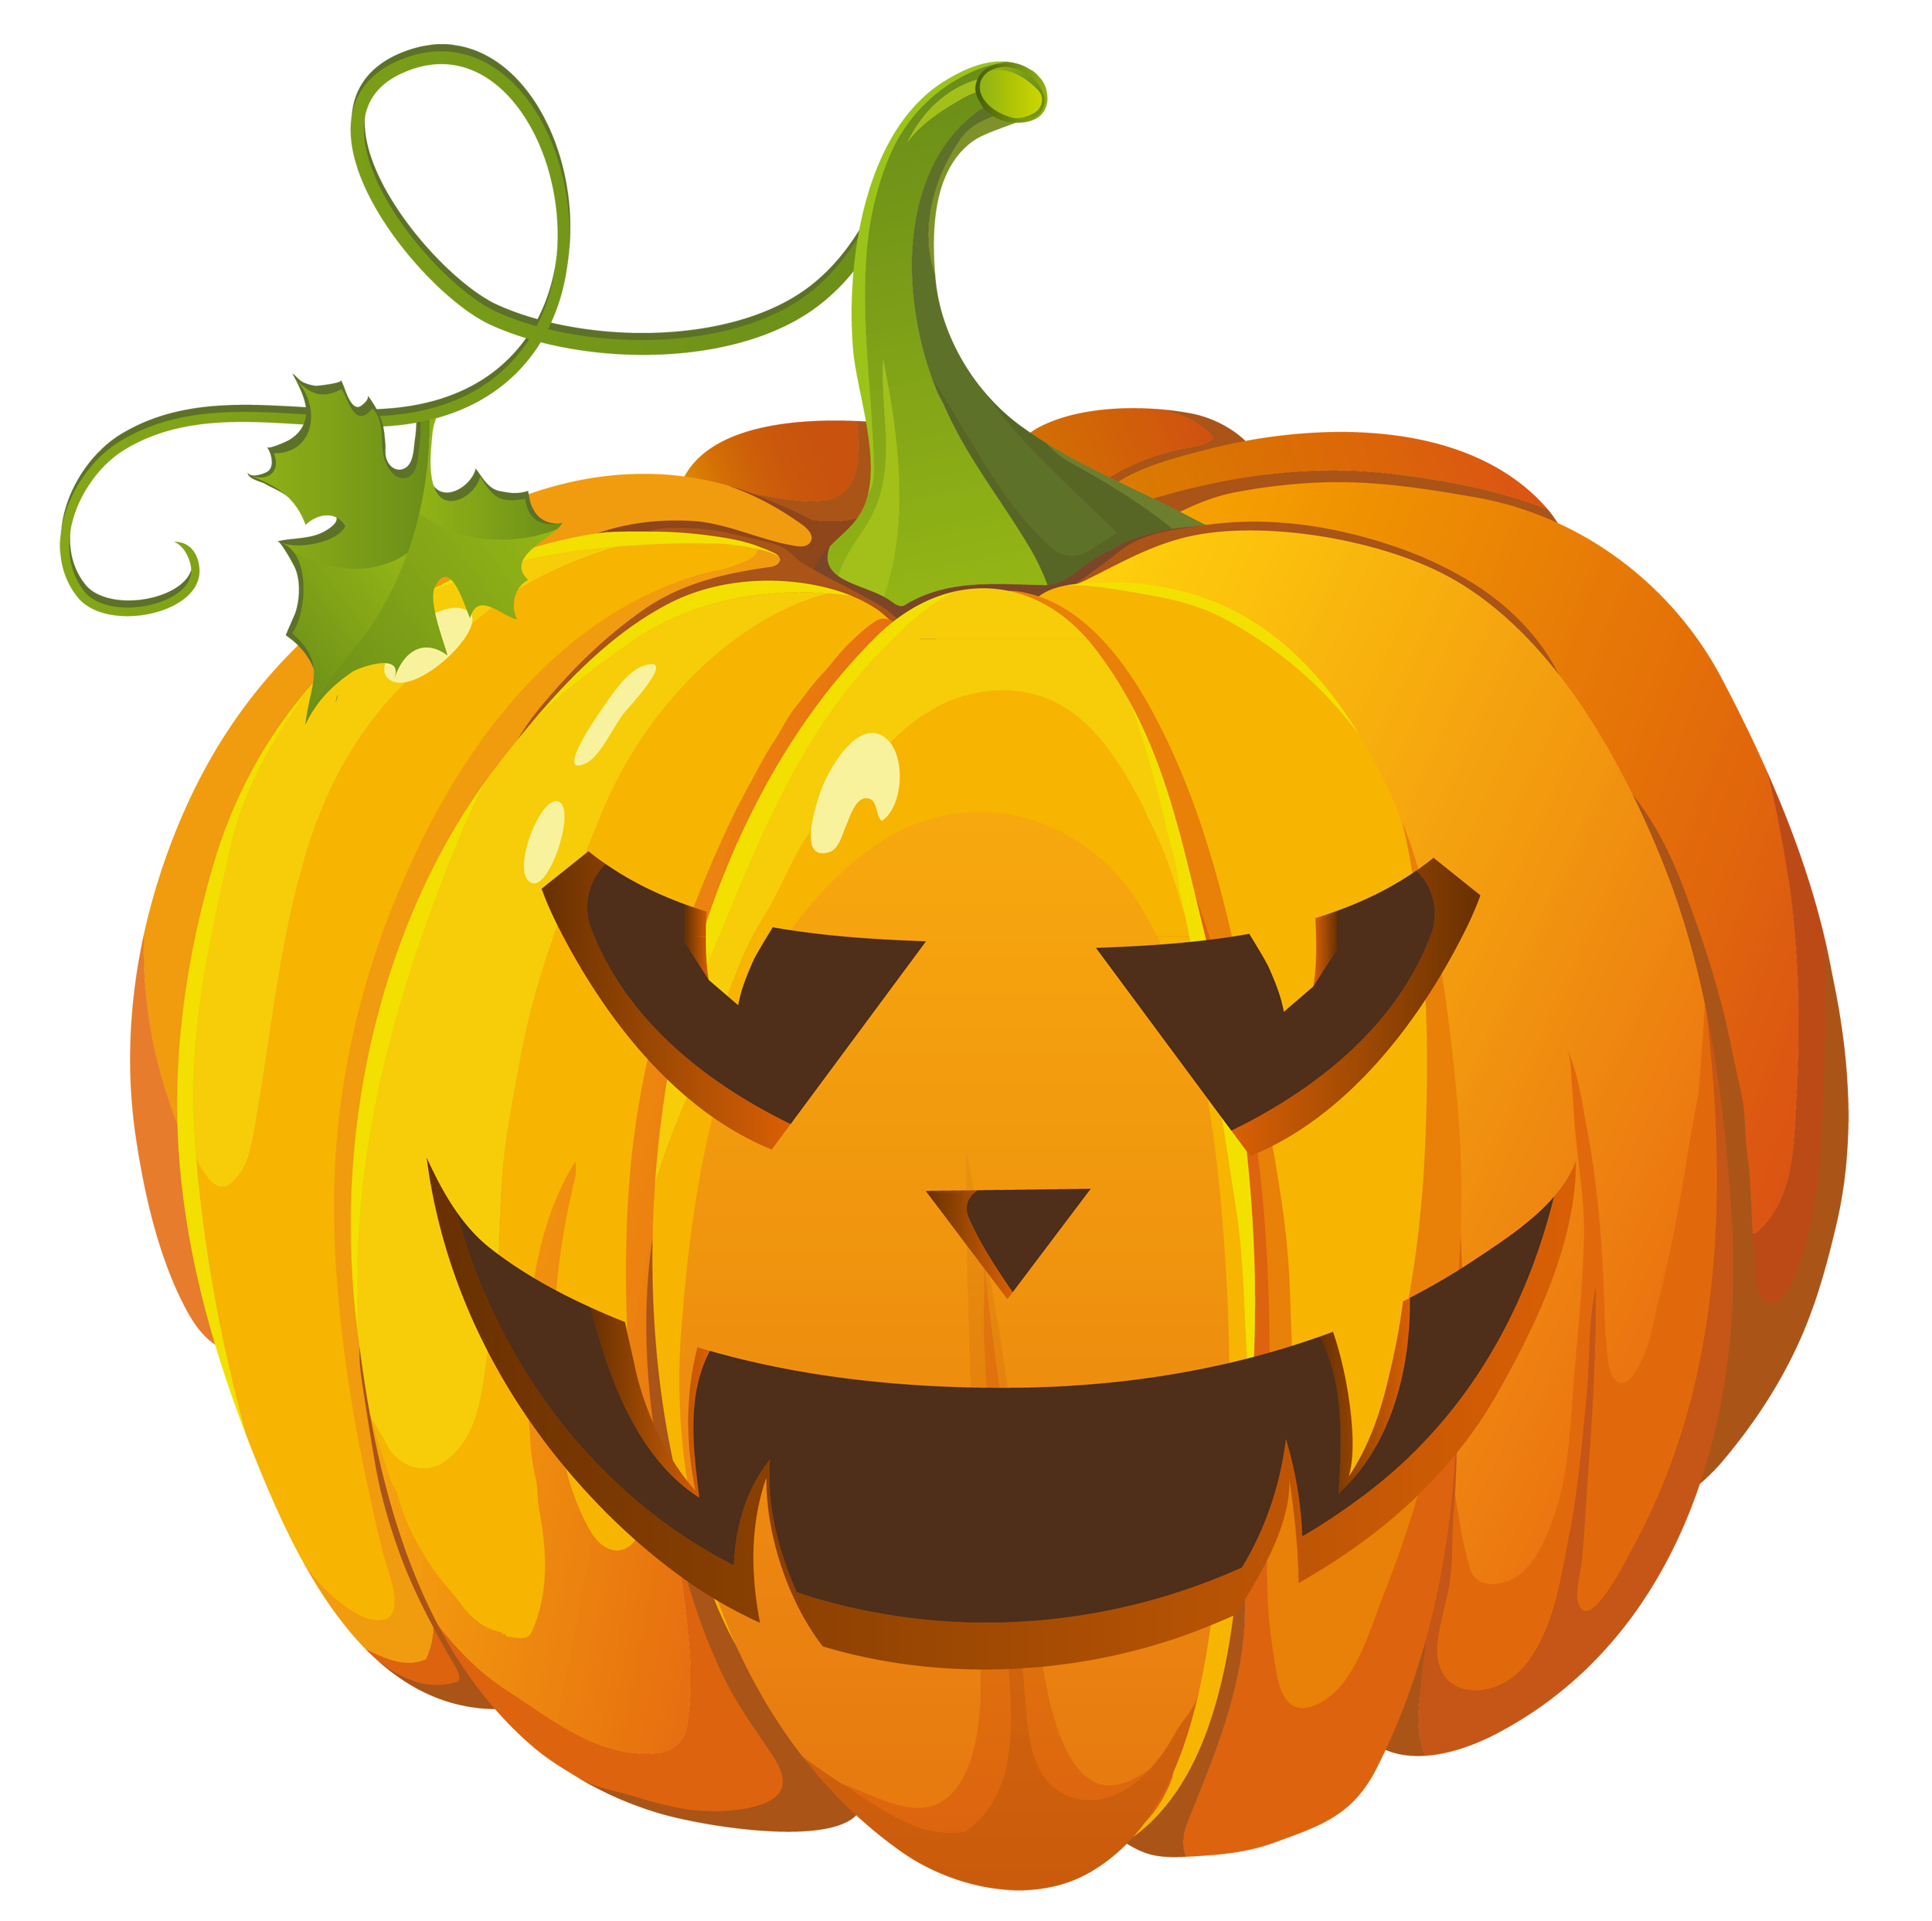 Scary clipart scary pumpkin patch. Party music from the